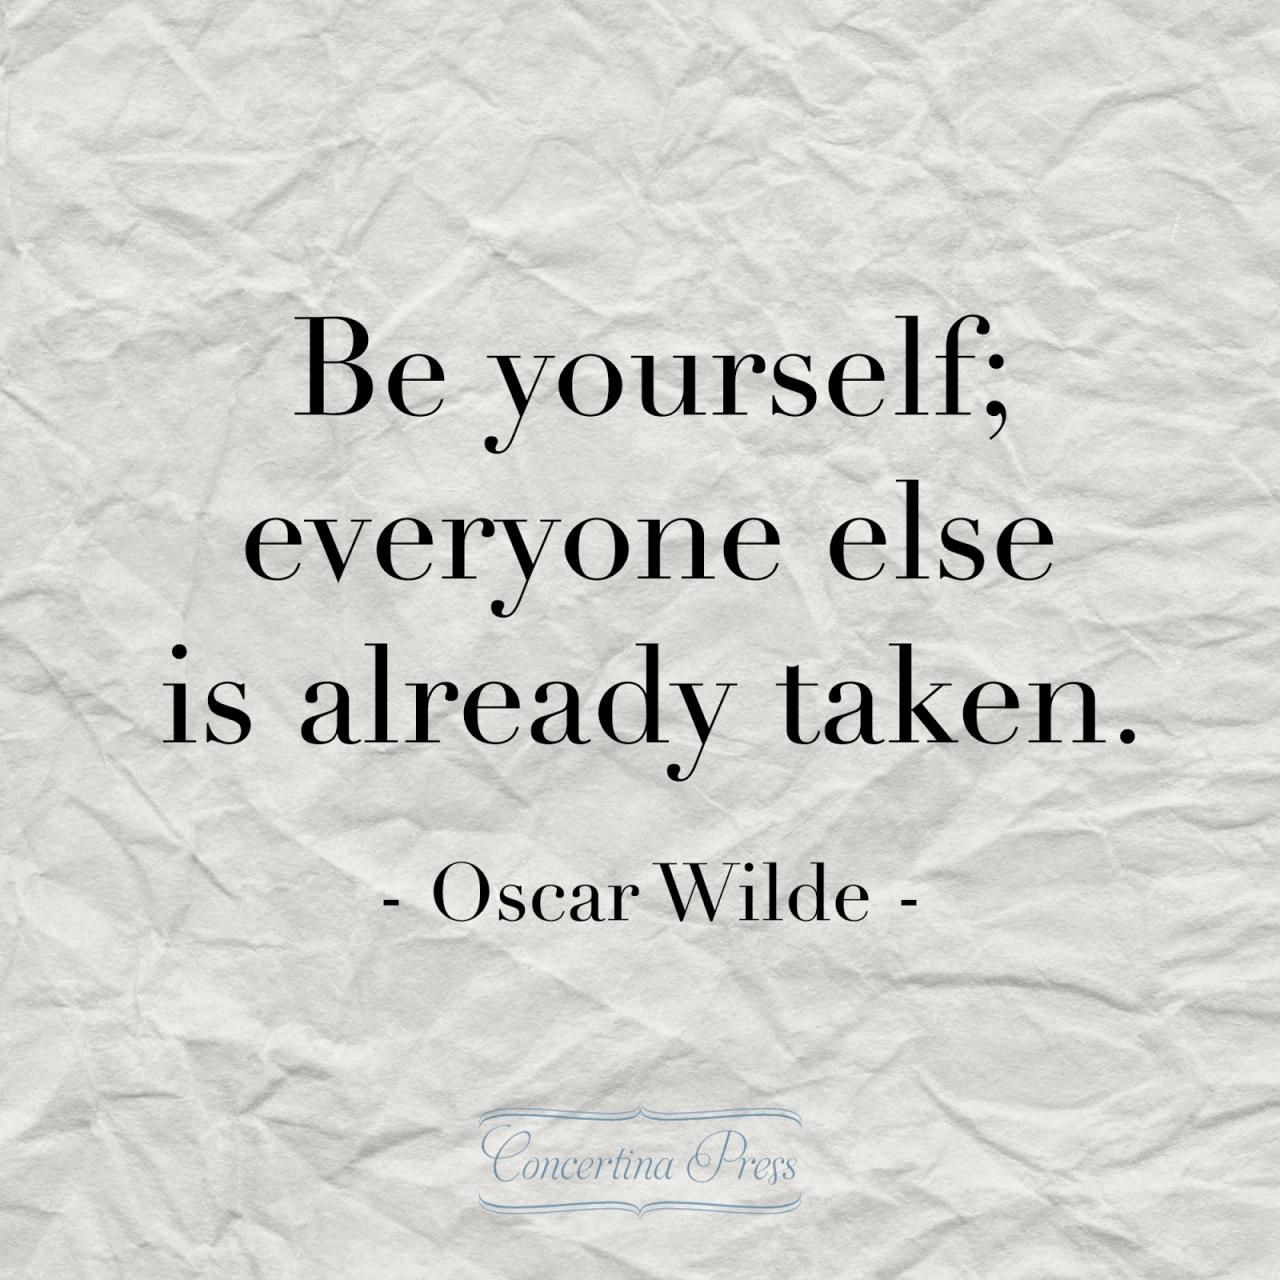 Oscar Wilde Love Quotes Oscar Wilde Quote Love Be Yourself Oscar Wilde Quotes Quote